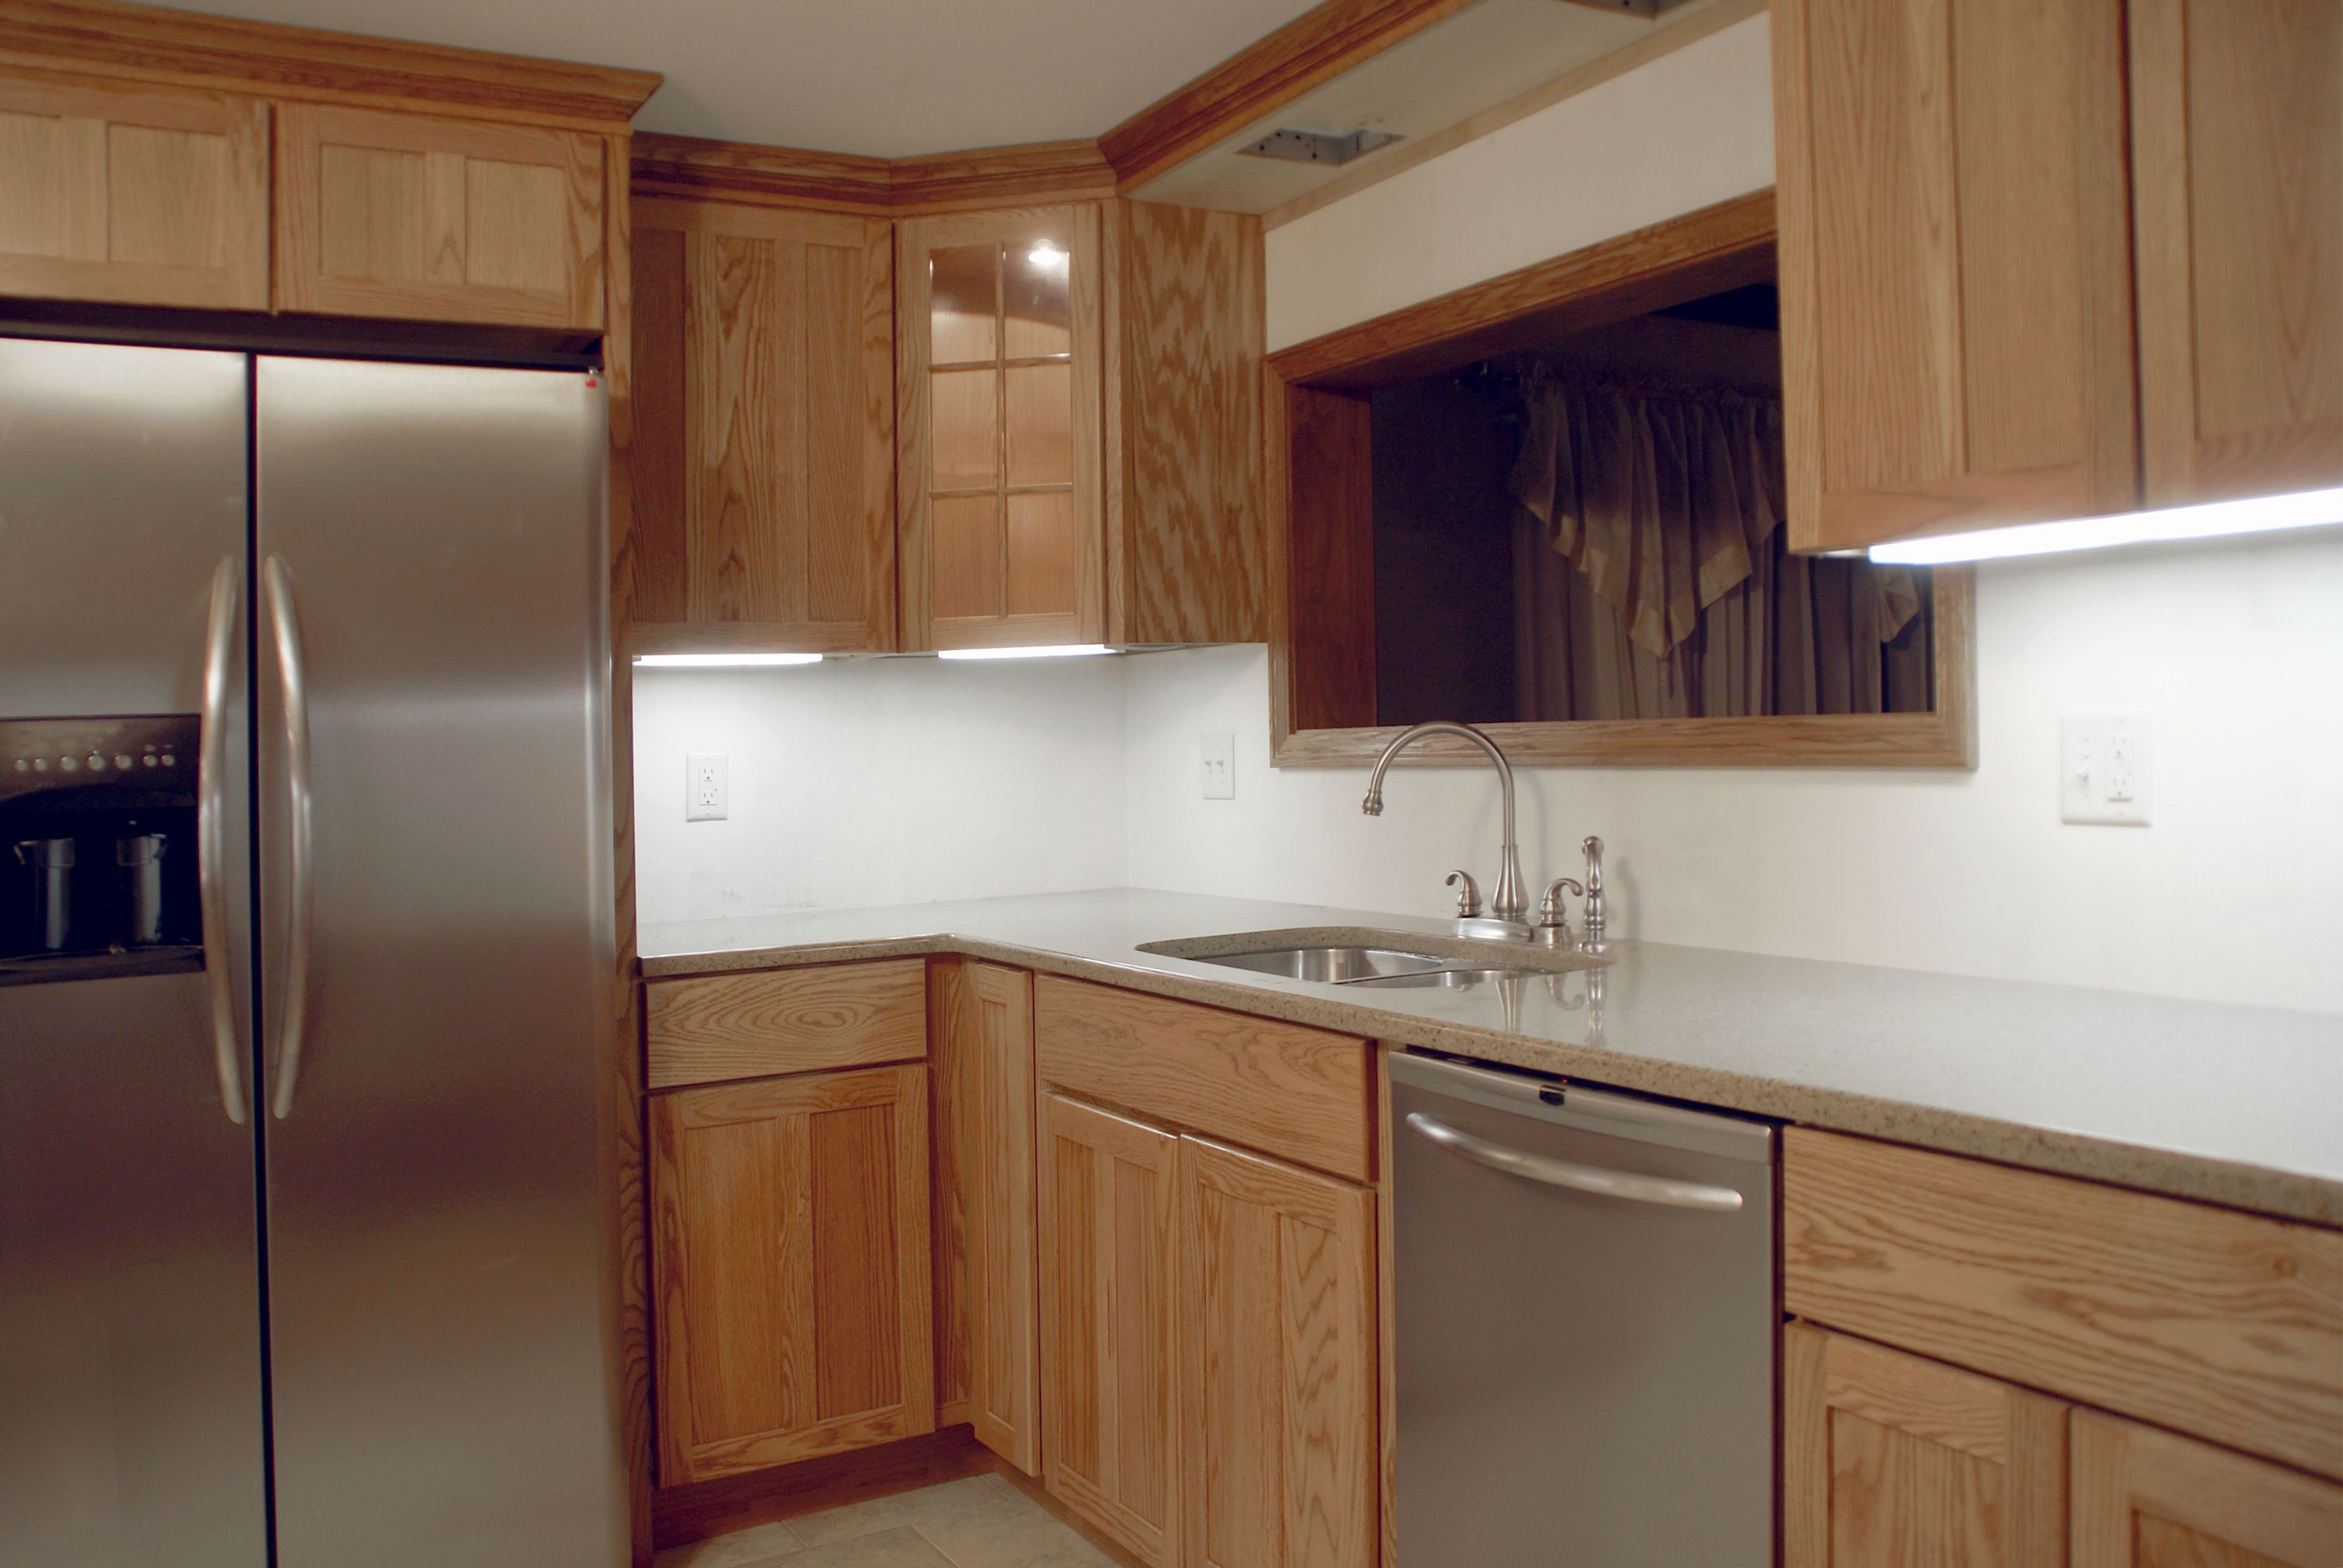 Permalink to How To Reface Old Kitchen Cabinets